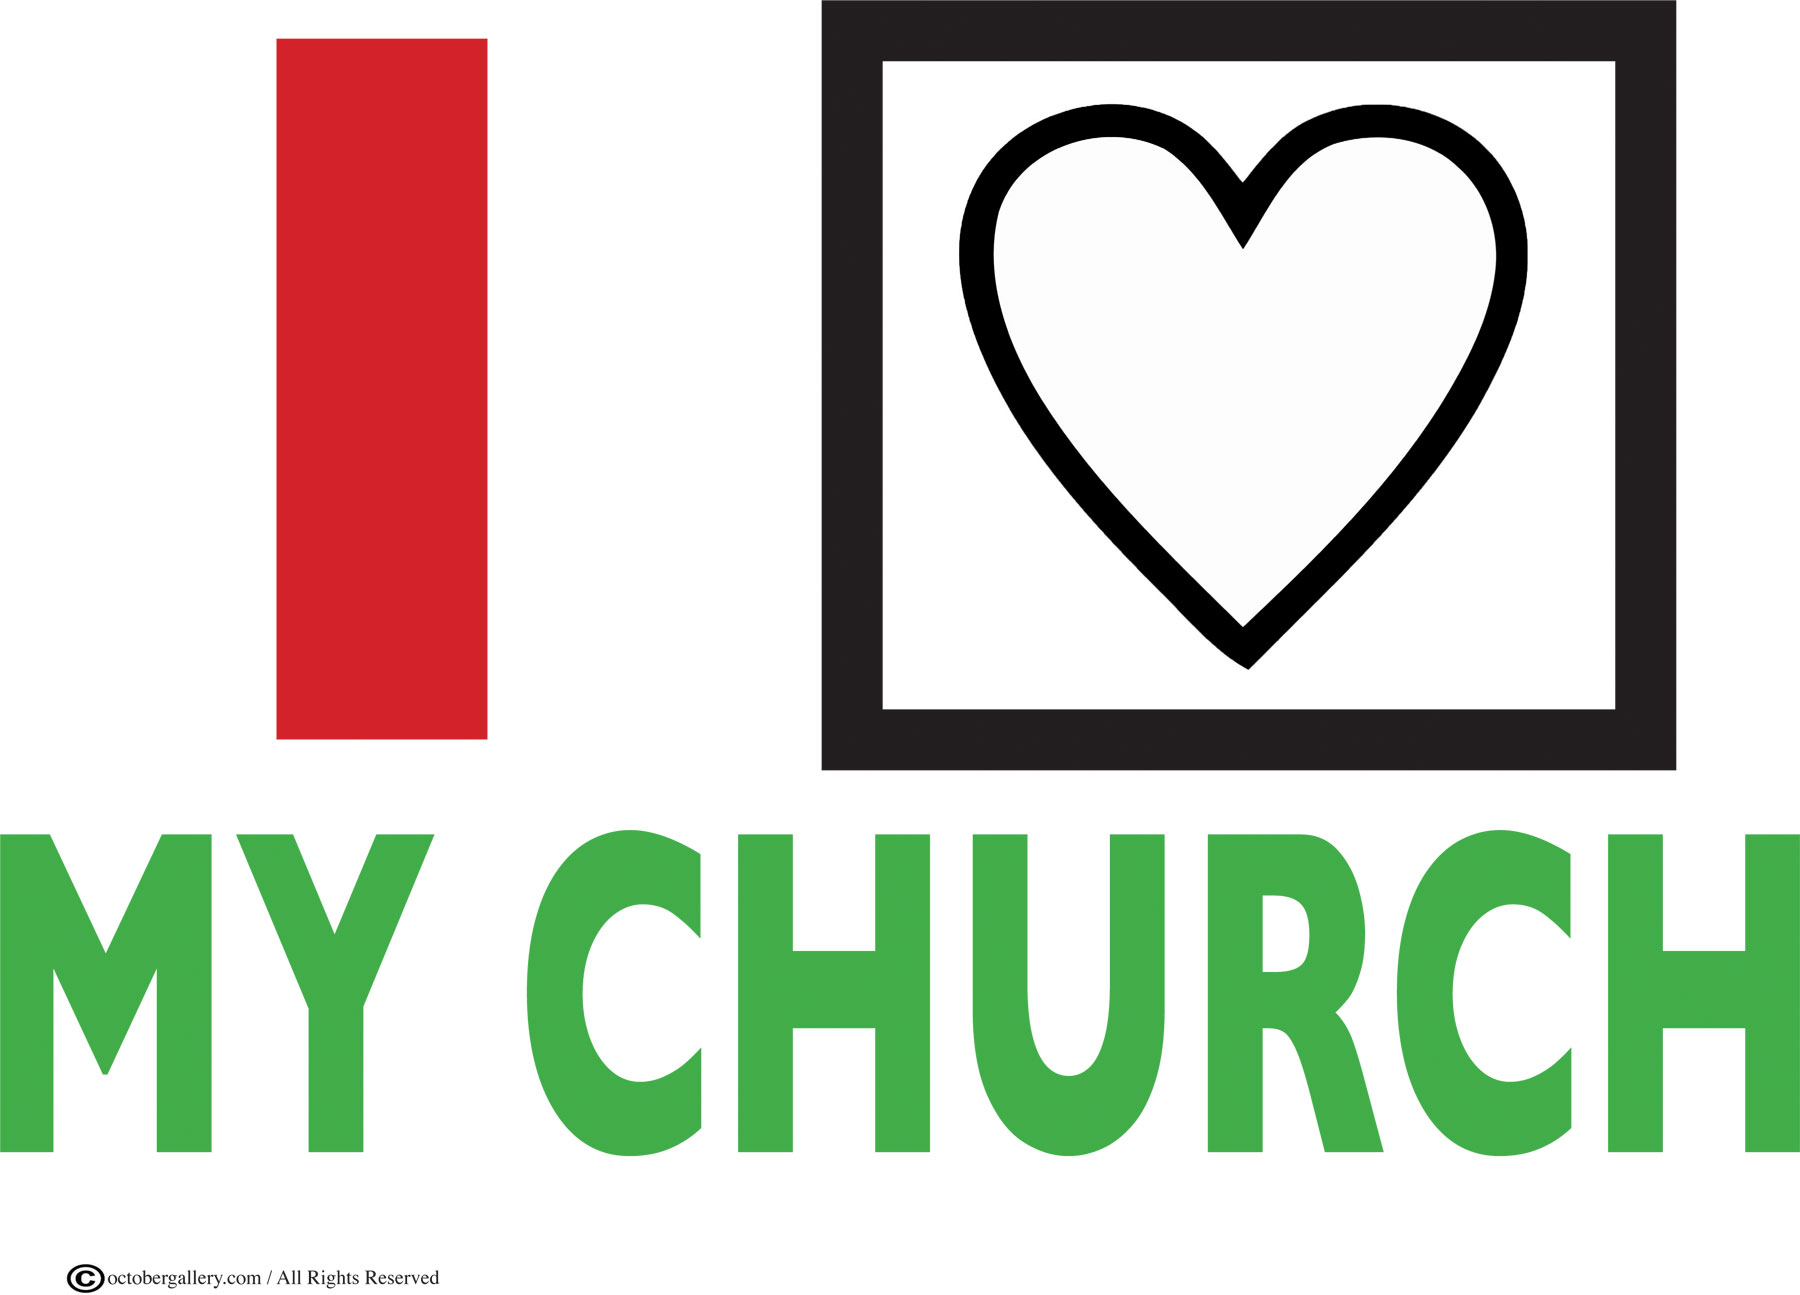 lovechurch